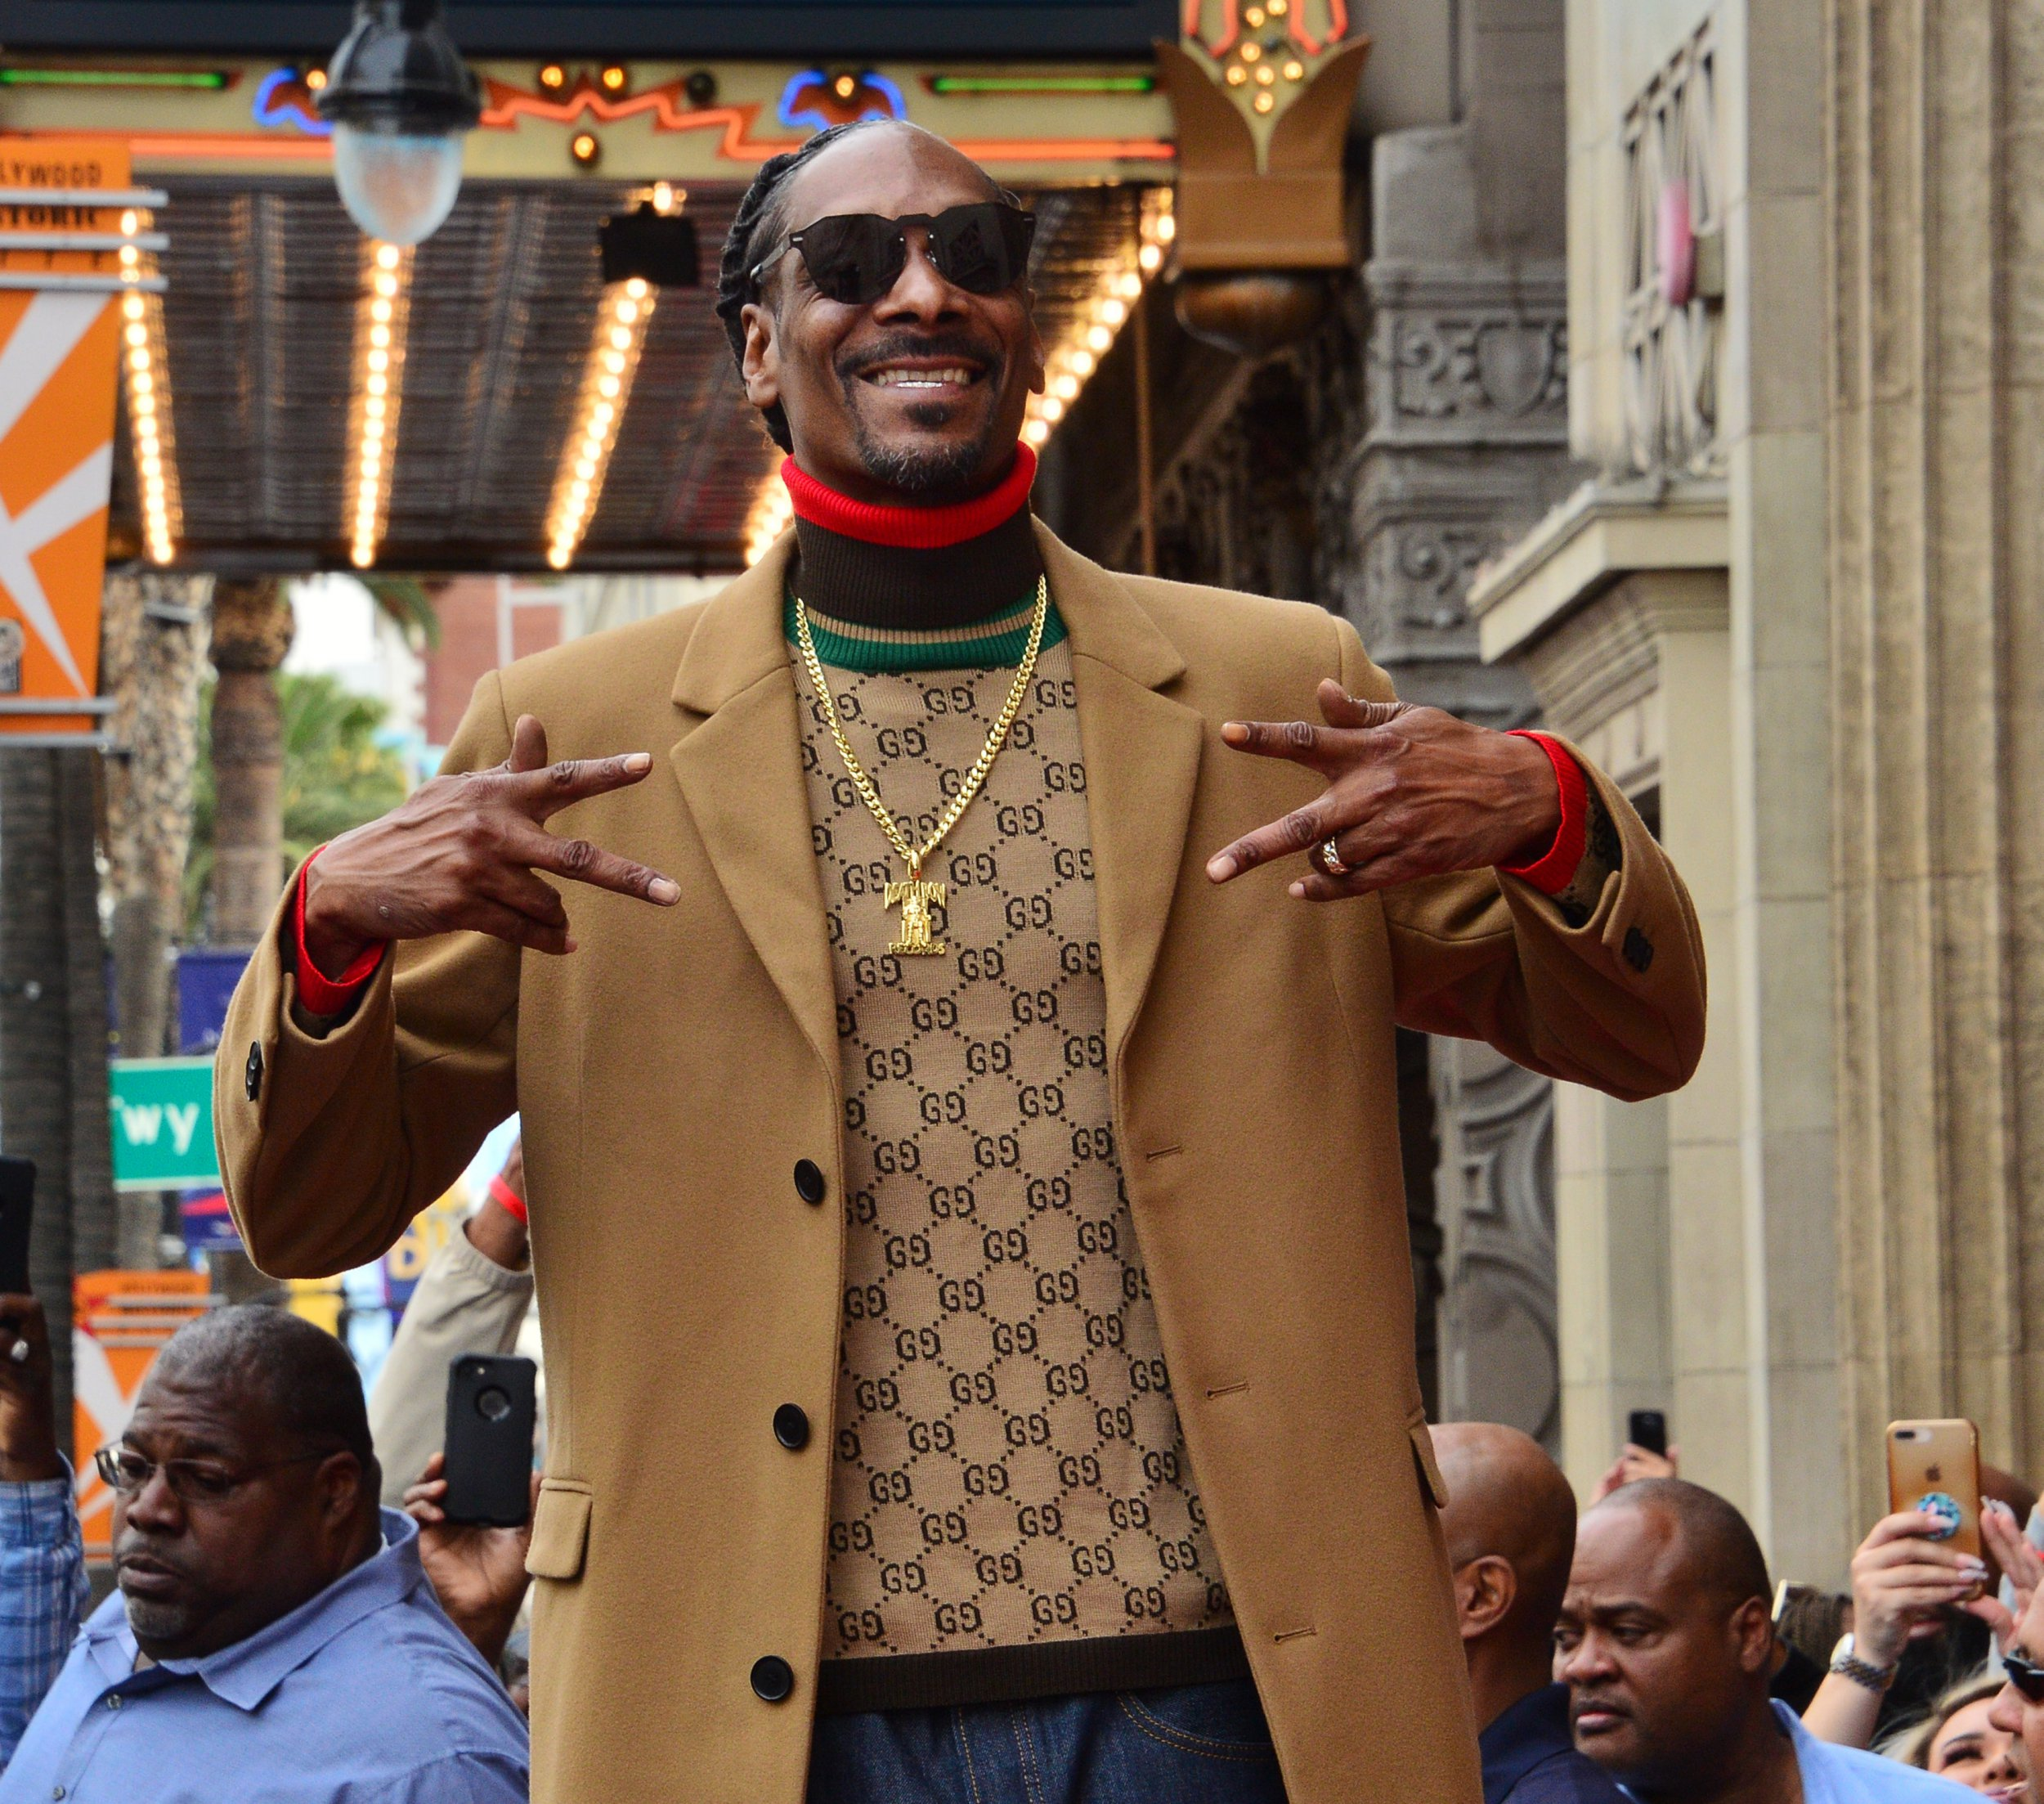 Rap singer, actor, musician and performer Snoop Dogg is introduced during an unveiling ceremony honoring him with the 2,651st star on the Hollywood Walk of Fame in Los Angeles on November 19, 2018. Photo by Jim Ruymen/UPIPHOTOGRAPH BY UPI / Barcroft Images